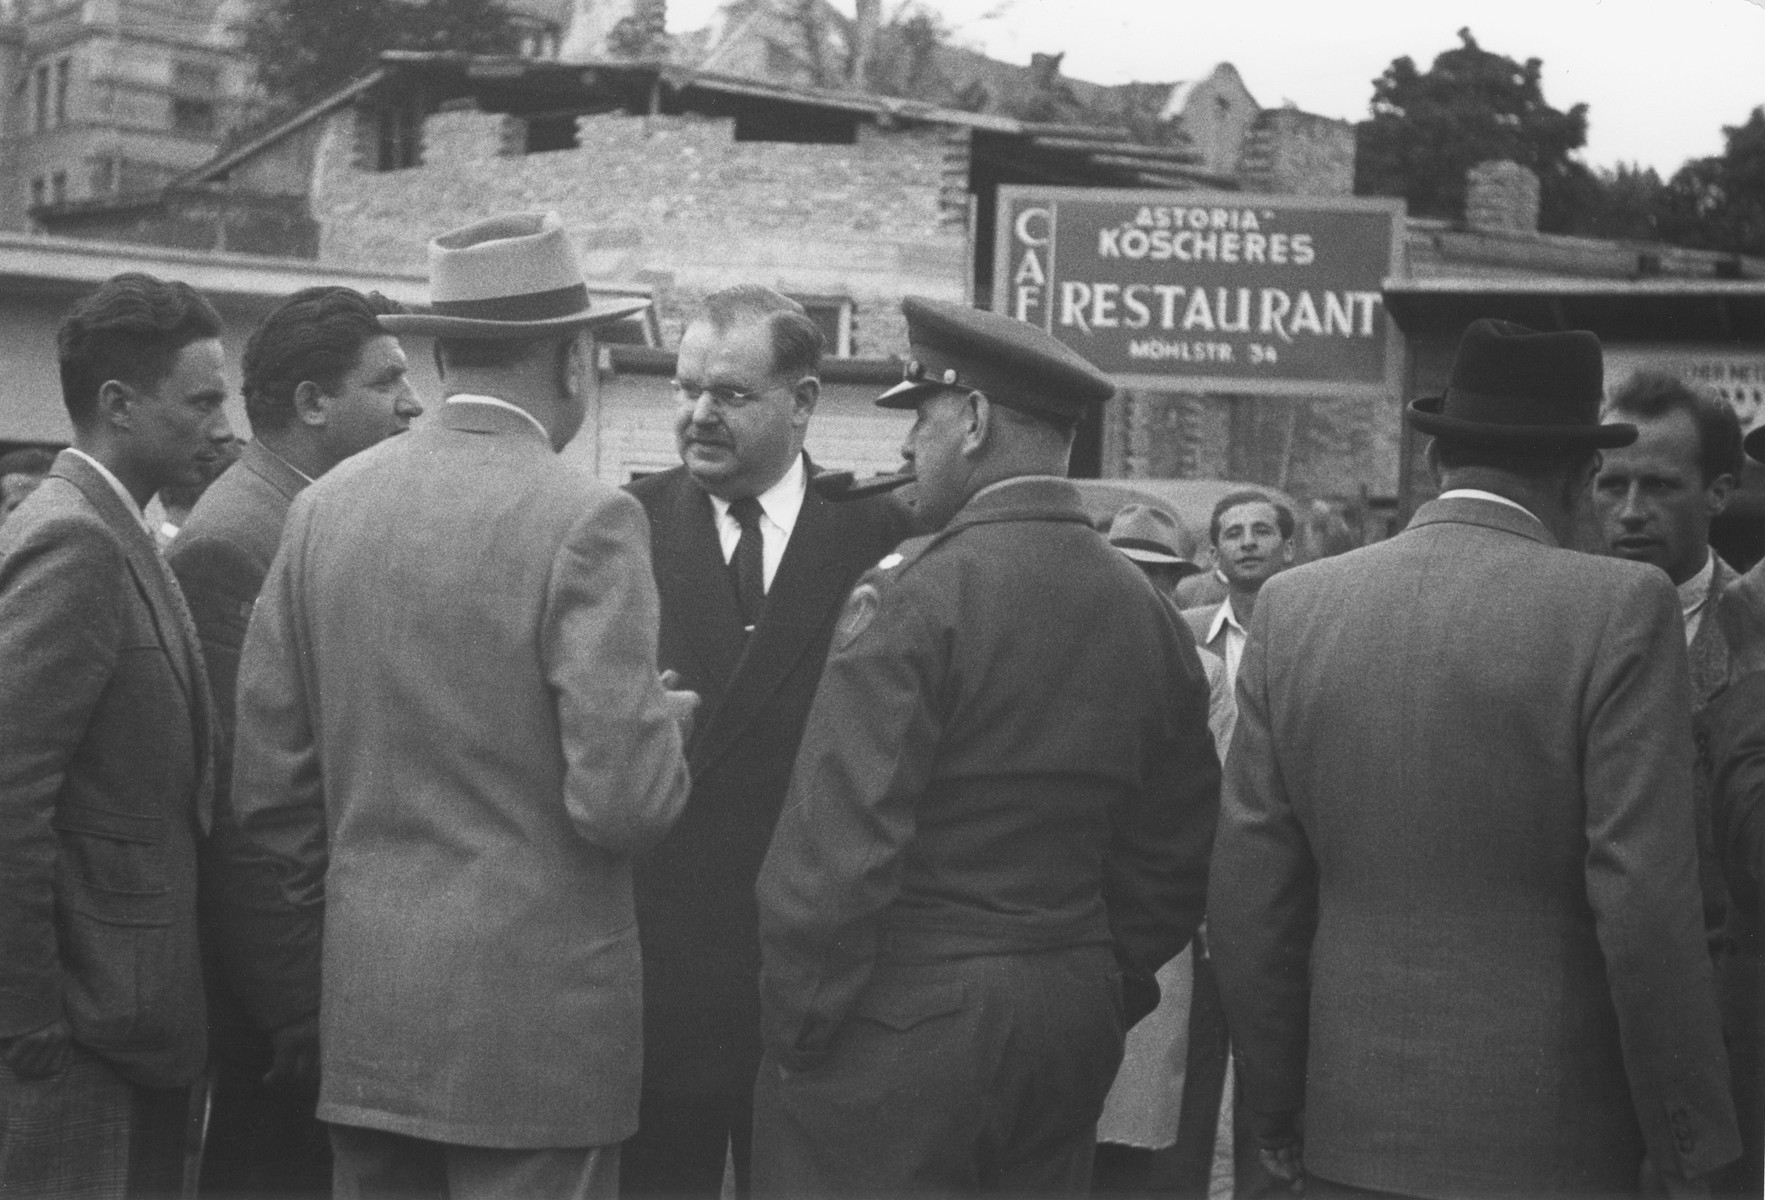 Philipp Auerbach talks to a group of men, including representatives of the military government outside the Astoria Kosher restaurant on the Moehlstrasse.